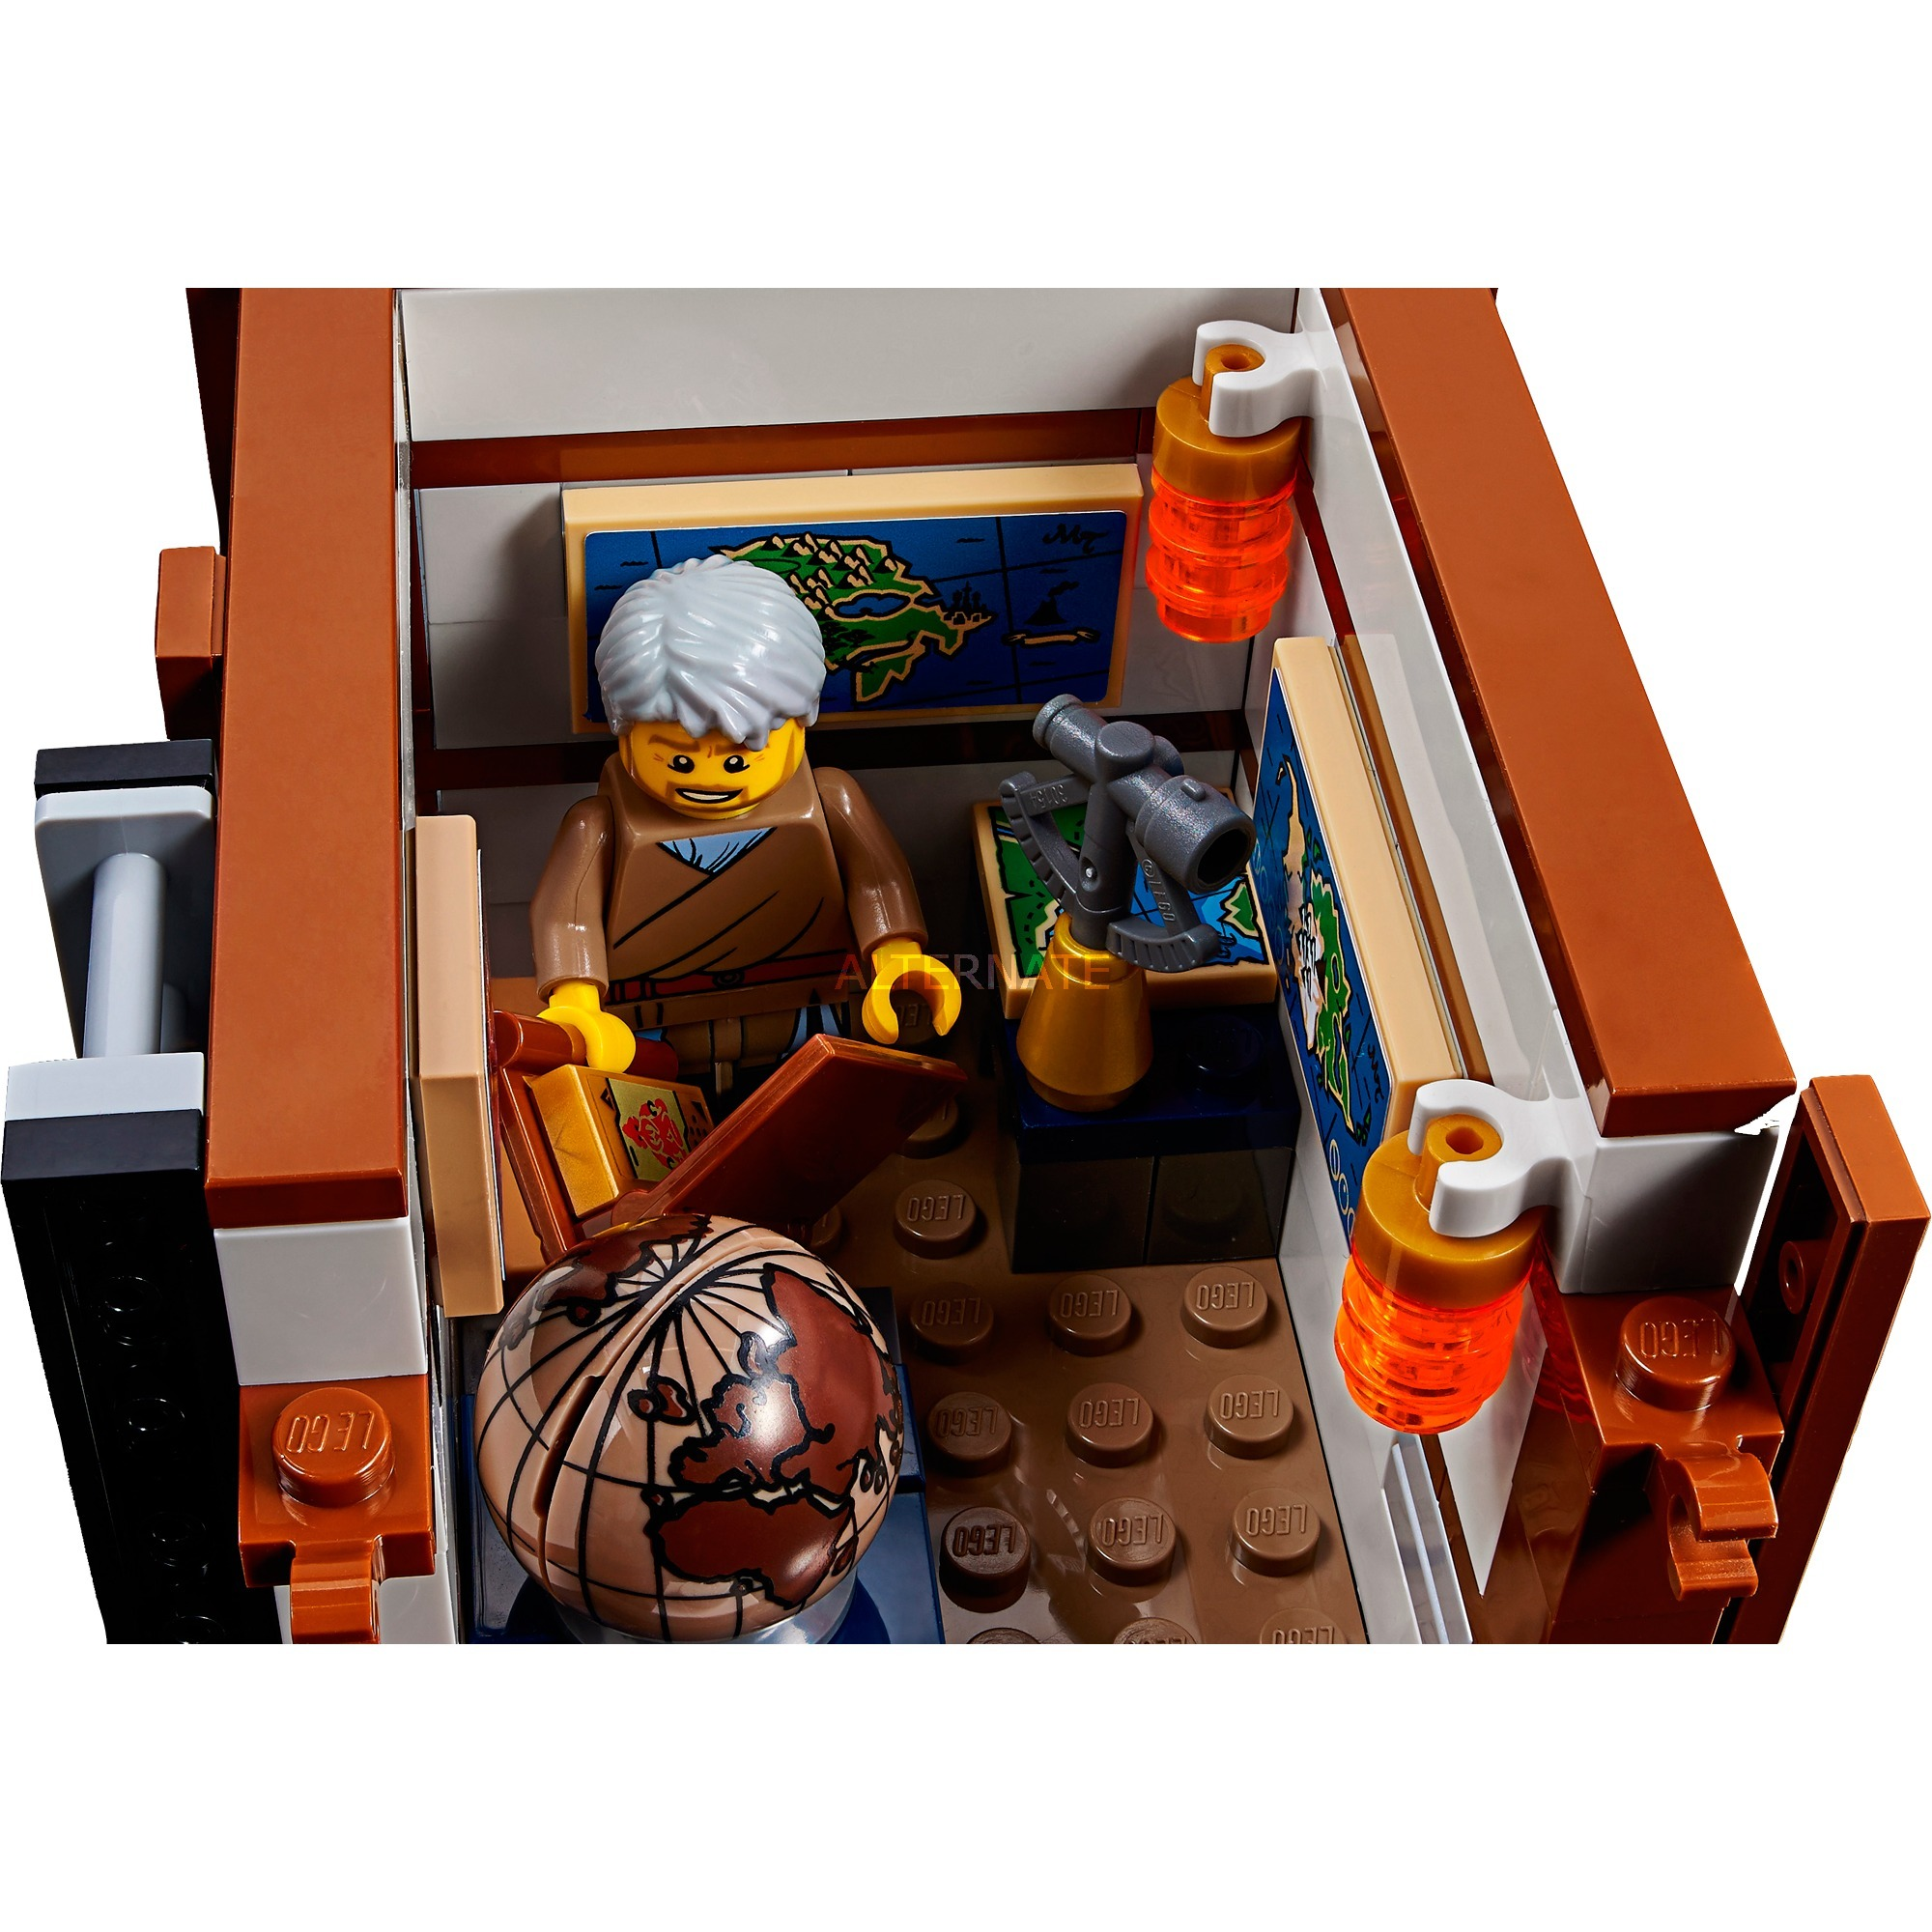 LEGO_70657__Jouets_de_construction@@1ssl